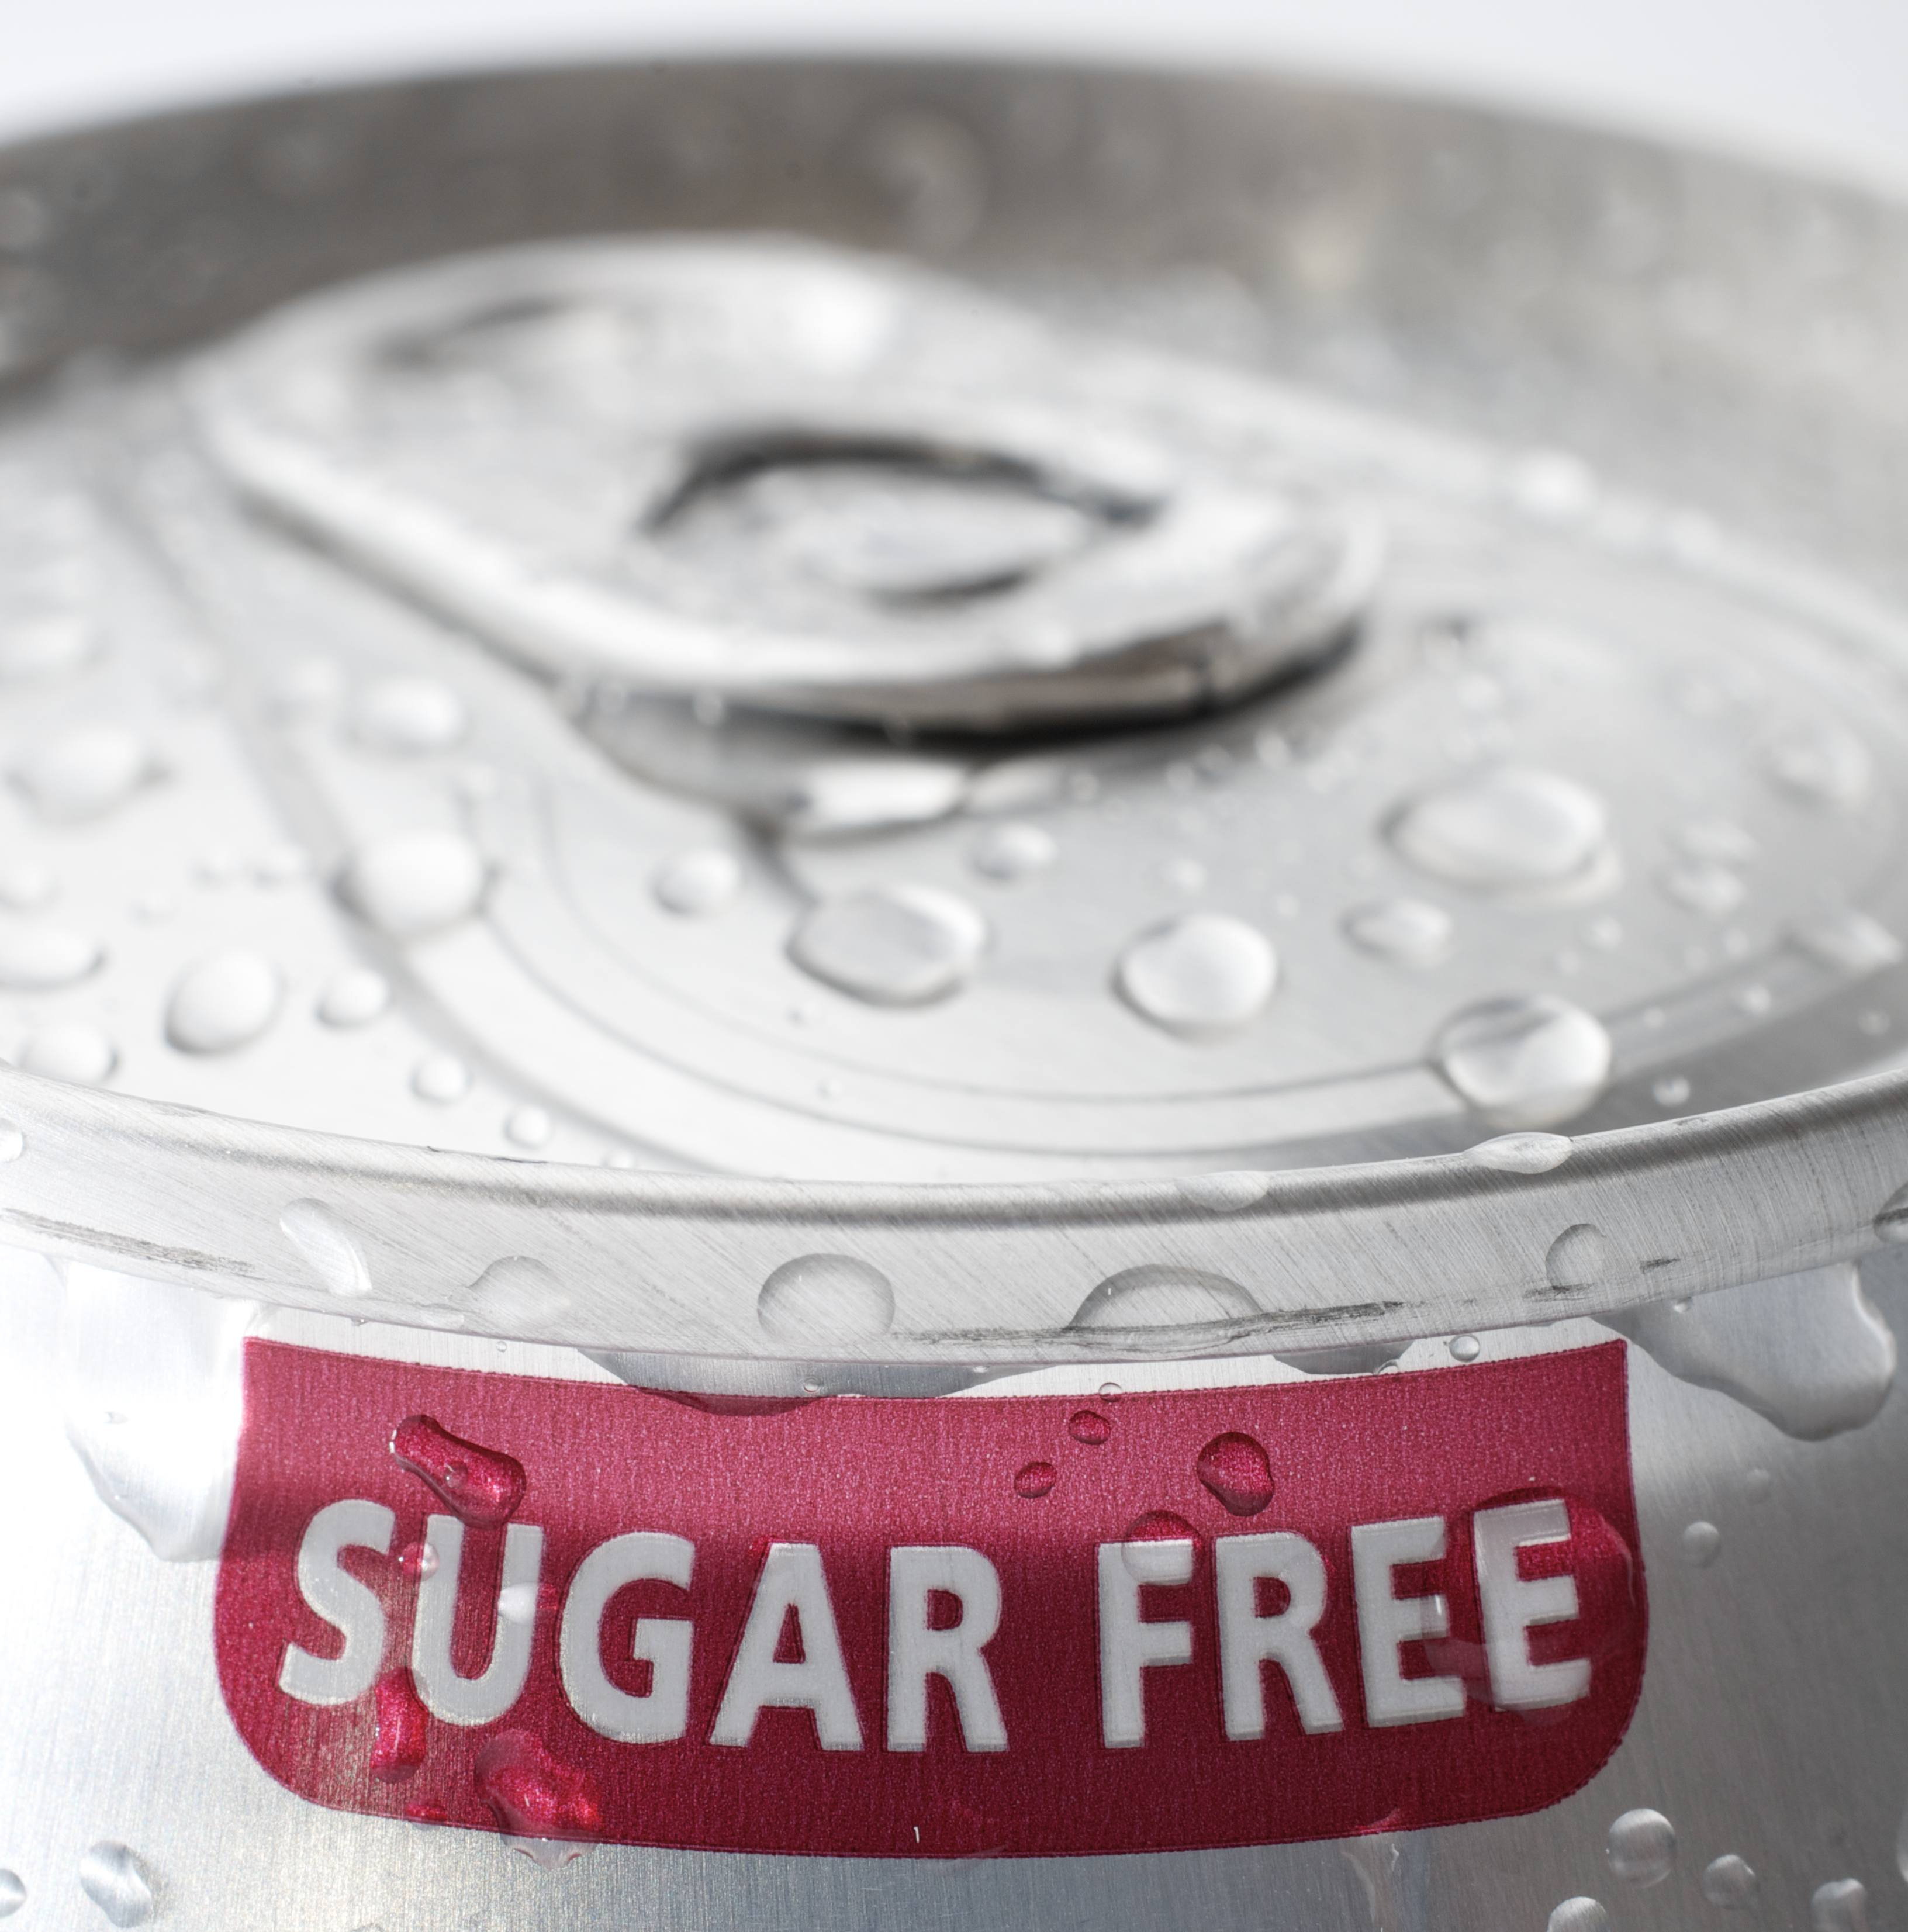 Sugary Drinks | The Nutrition Source | Harvard T H  Chan School of